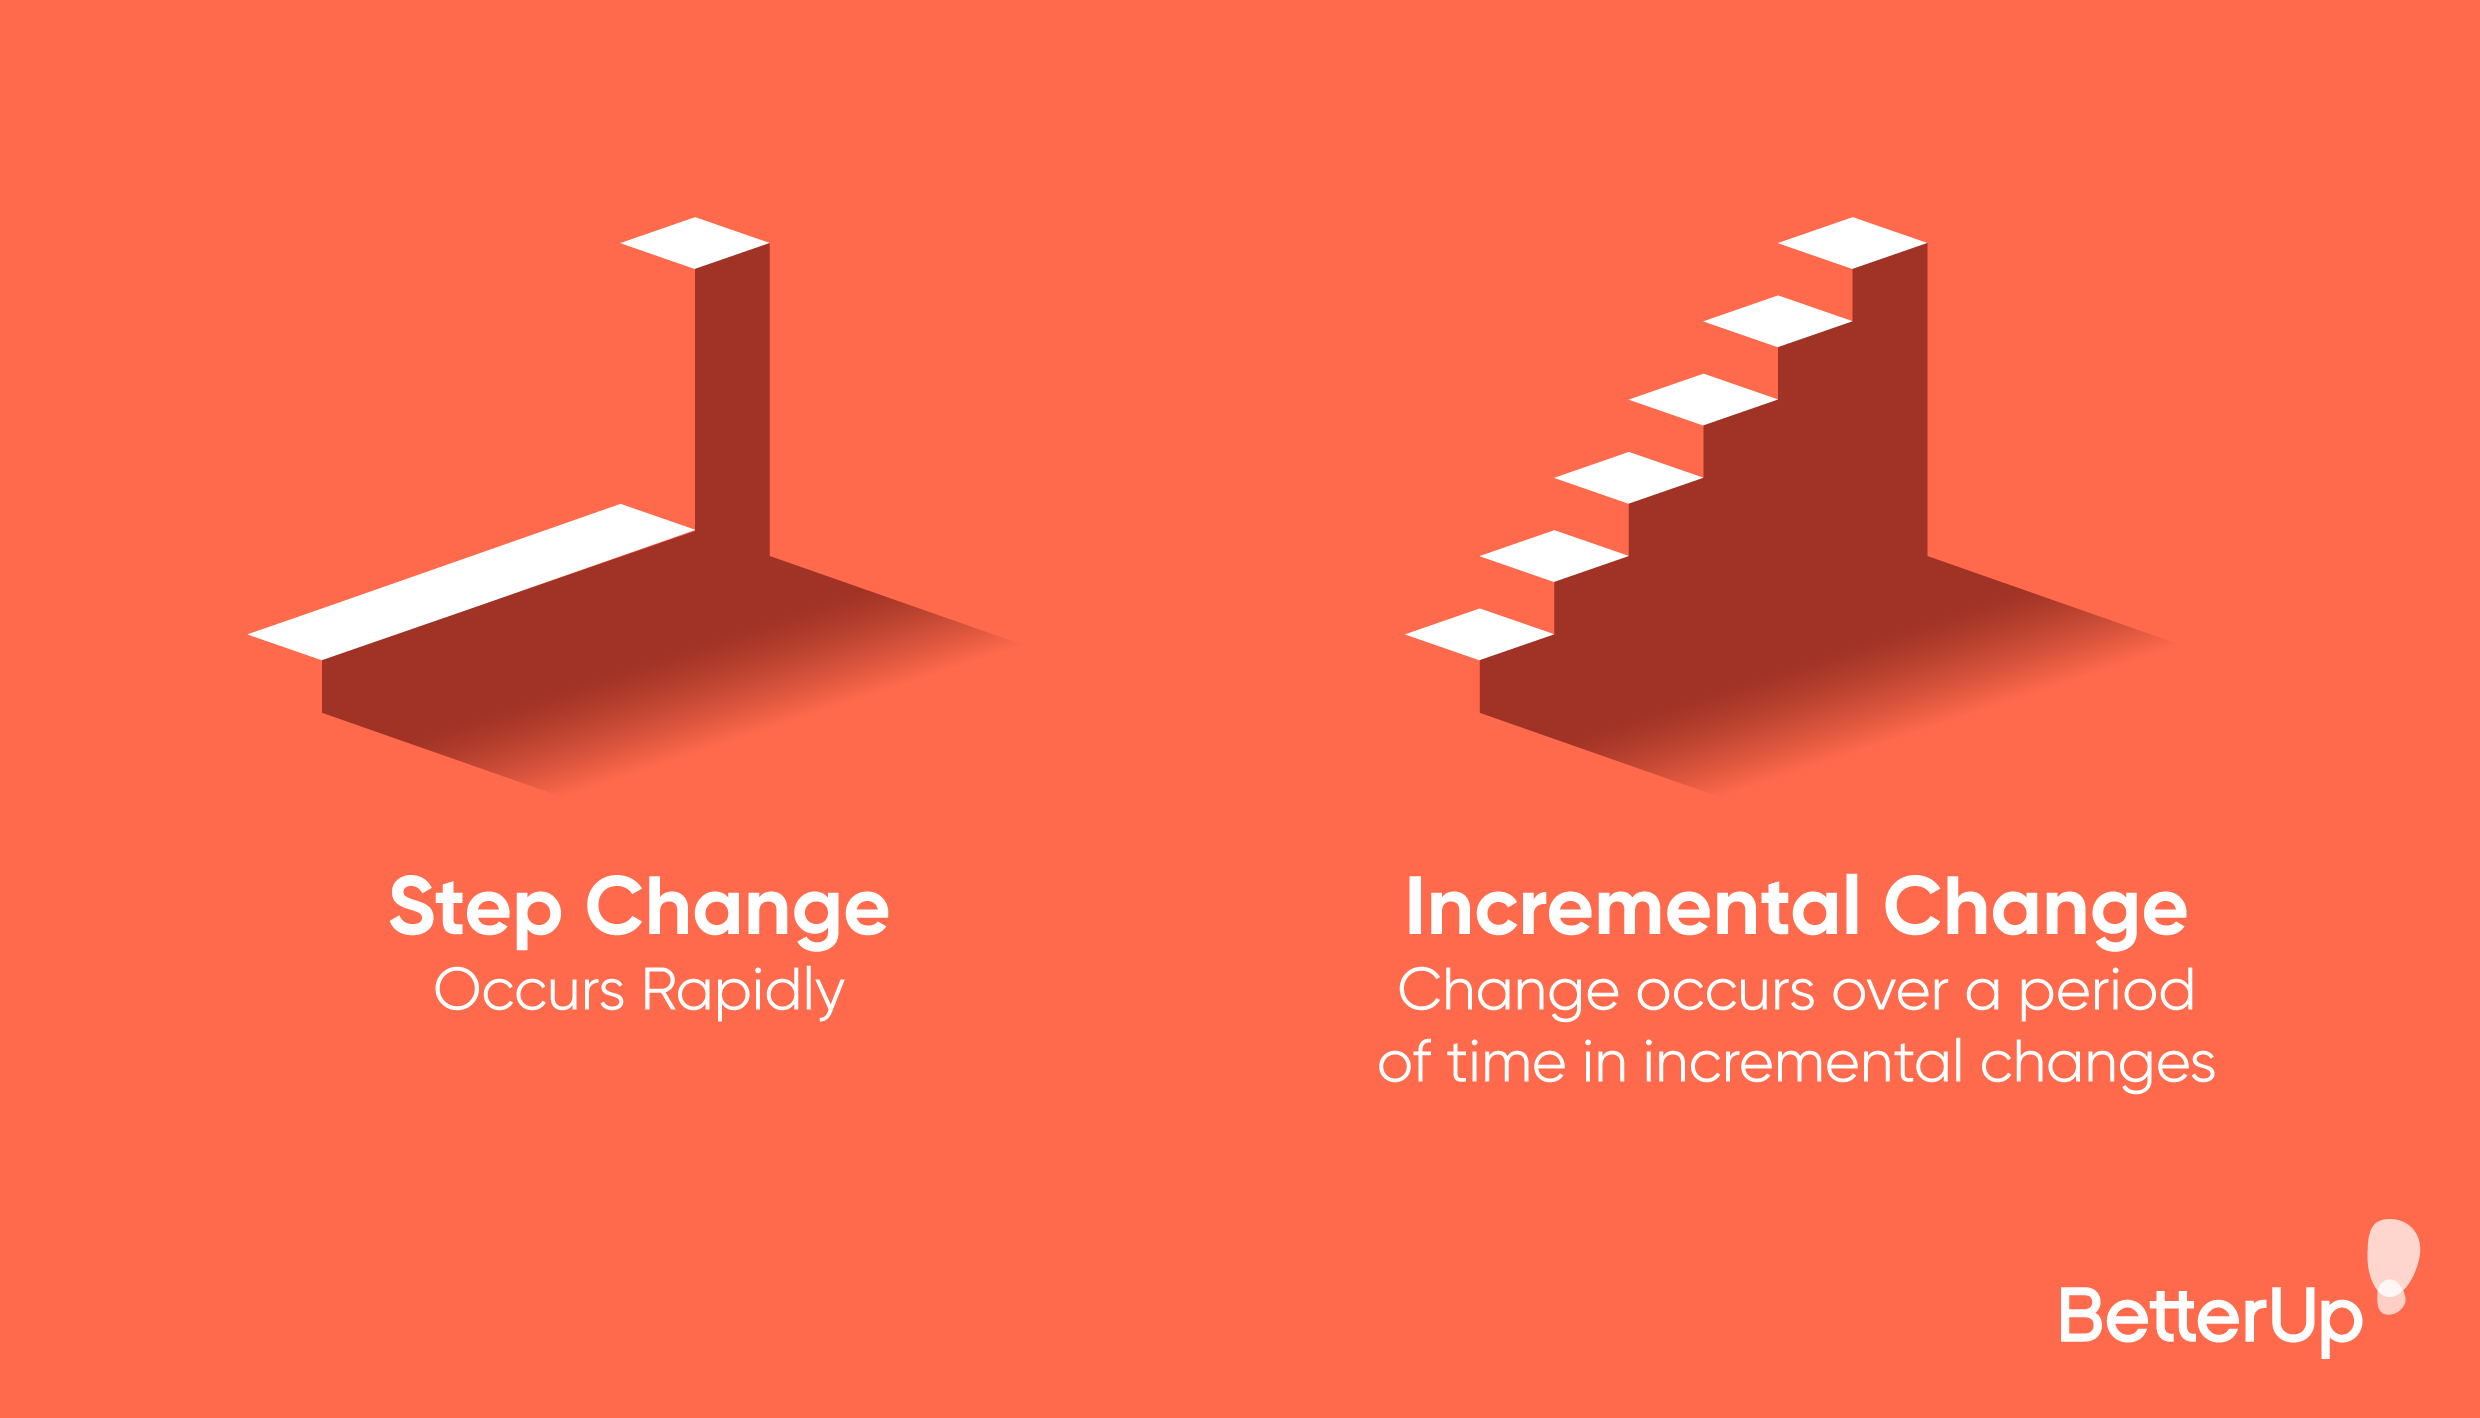 Demonstration of how small step changes lead to incremental change.